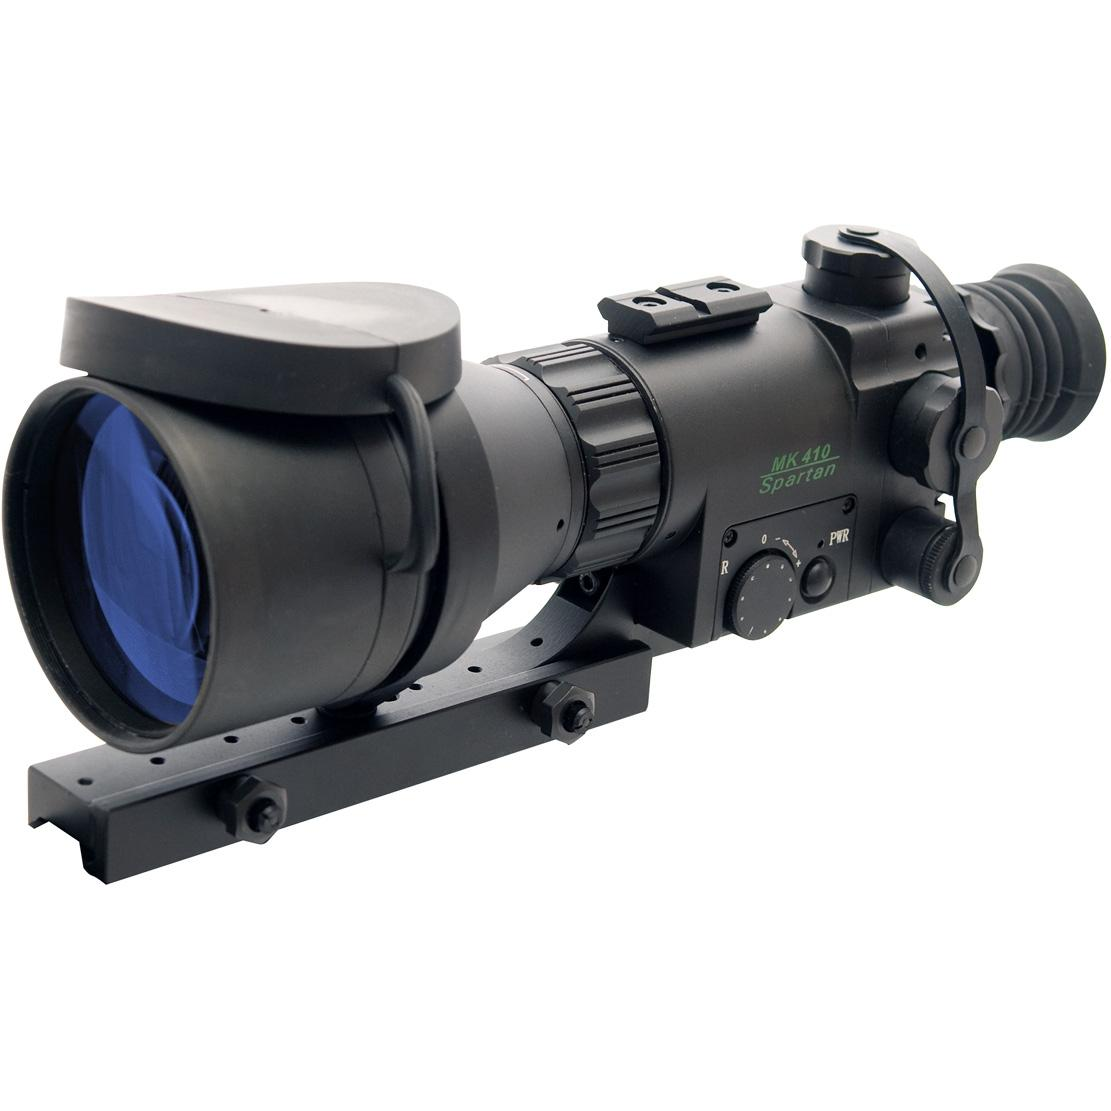 Picture of ATN Aries MK410 Spartan Night Vision Weapon Scope With Gen 1 40 Lp/mm Resolution - NVWSM41010